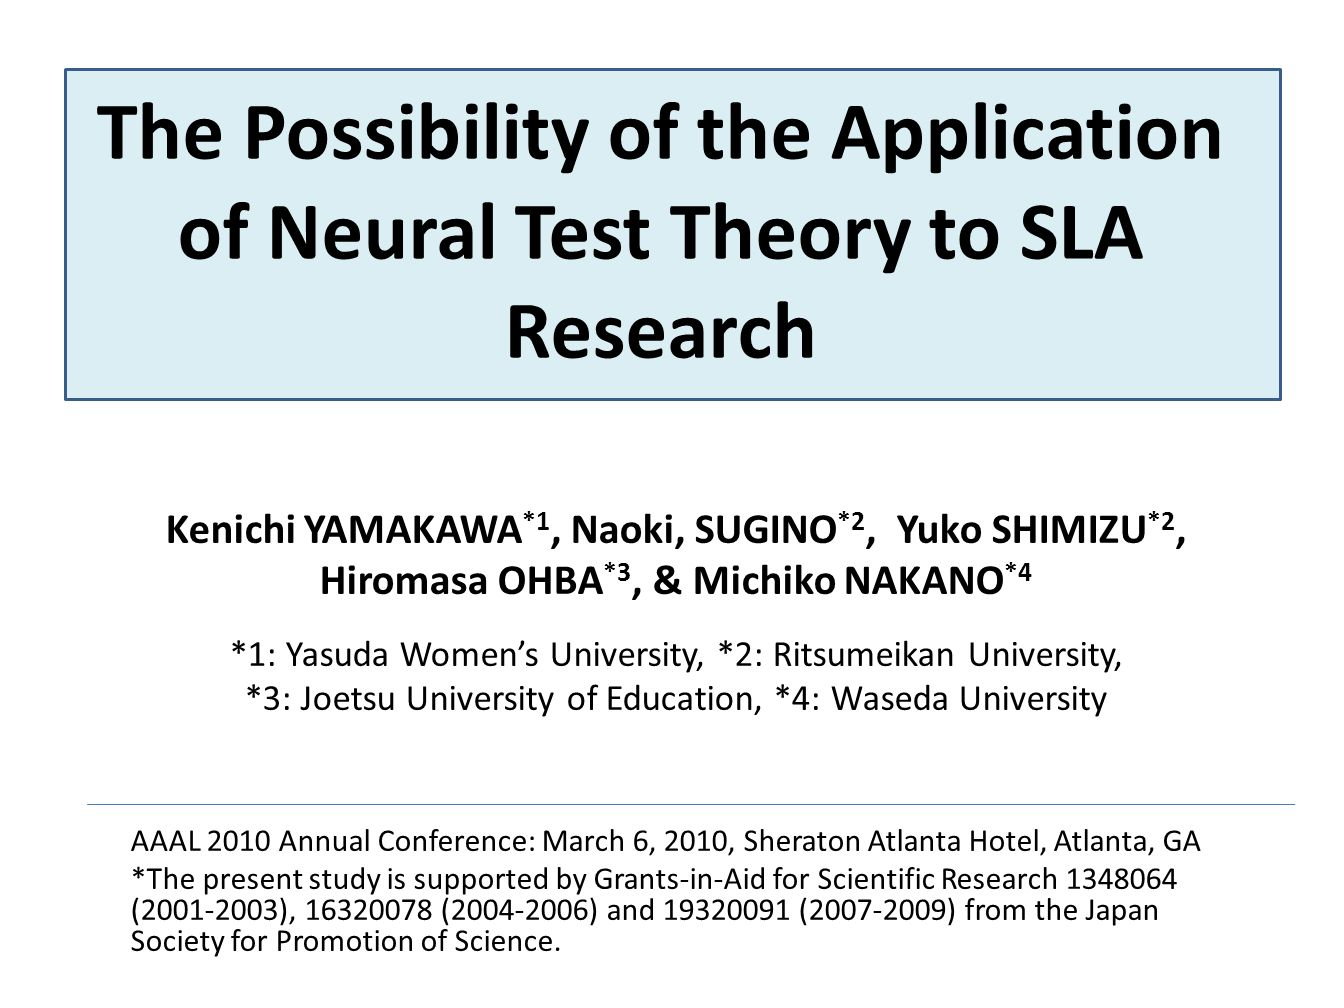 The Possibility of the Application of Neural Test Theory to SLA Research Kenichi YAMAKAWA *1, Naoki, SUGINO *2, Yuko SHIMIZU *2, Hiromasa OHBA *3, & Michiko NAKANO *4 *1: Yasuda Womens University, *2: Ritsumeikan University, *3: Joetsu University of Education, *4: Waseda University AAAL 2010 Annual Conference: March 6, 2010, Sheraton Atlanta Hotel, Atlanta, GA *The present study is supported by Grants-in-Aid for Scientific Research 1348064 (2001-2003), 16320078 (2004-2006) and 19320091 (2007-2009) from the Japan Society for Promotion of Science.